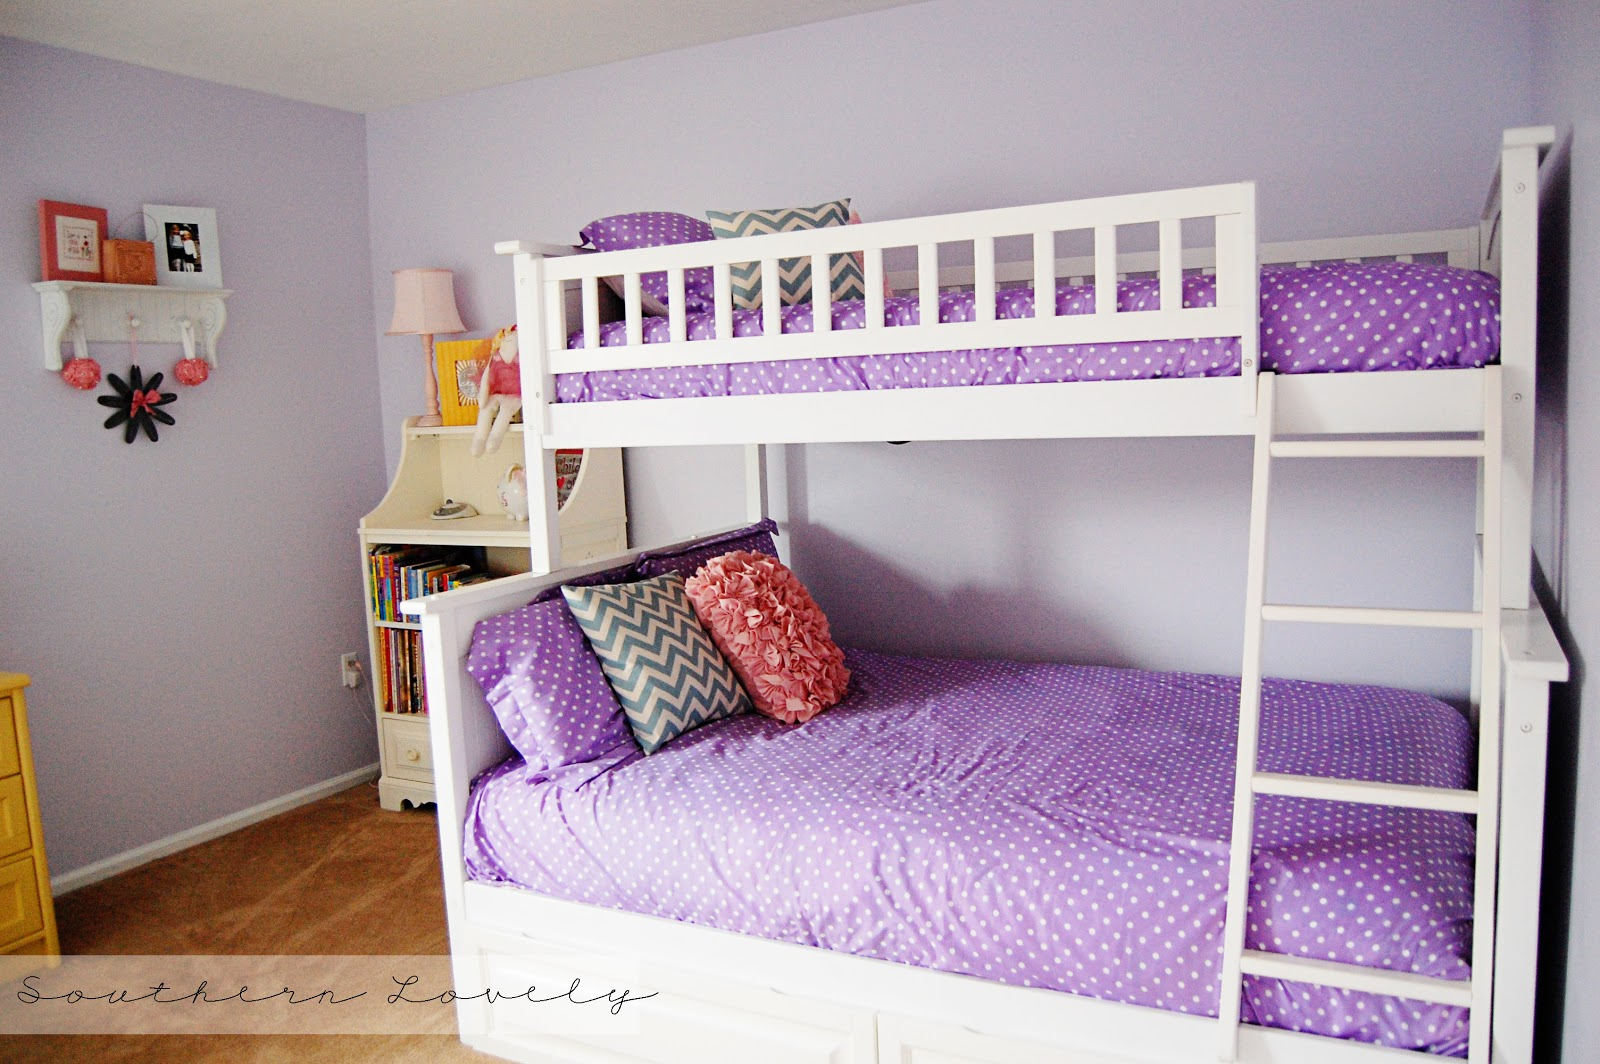 Pretty beds for girls discosparadiso for Girls bedroom decorating ideas with bunk beds